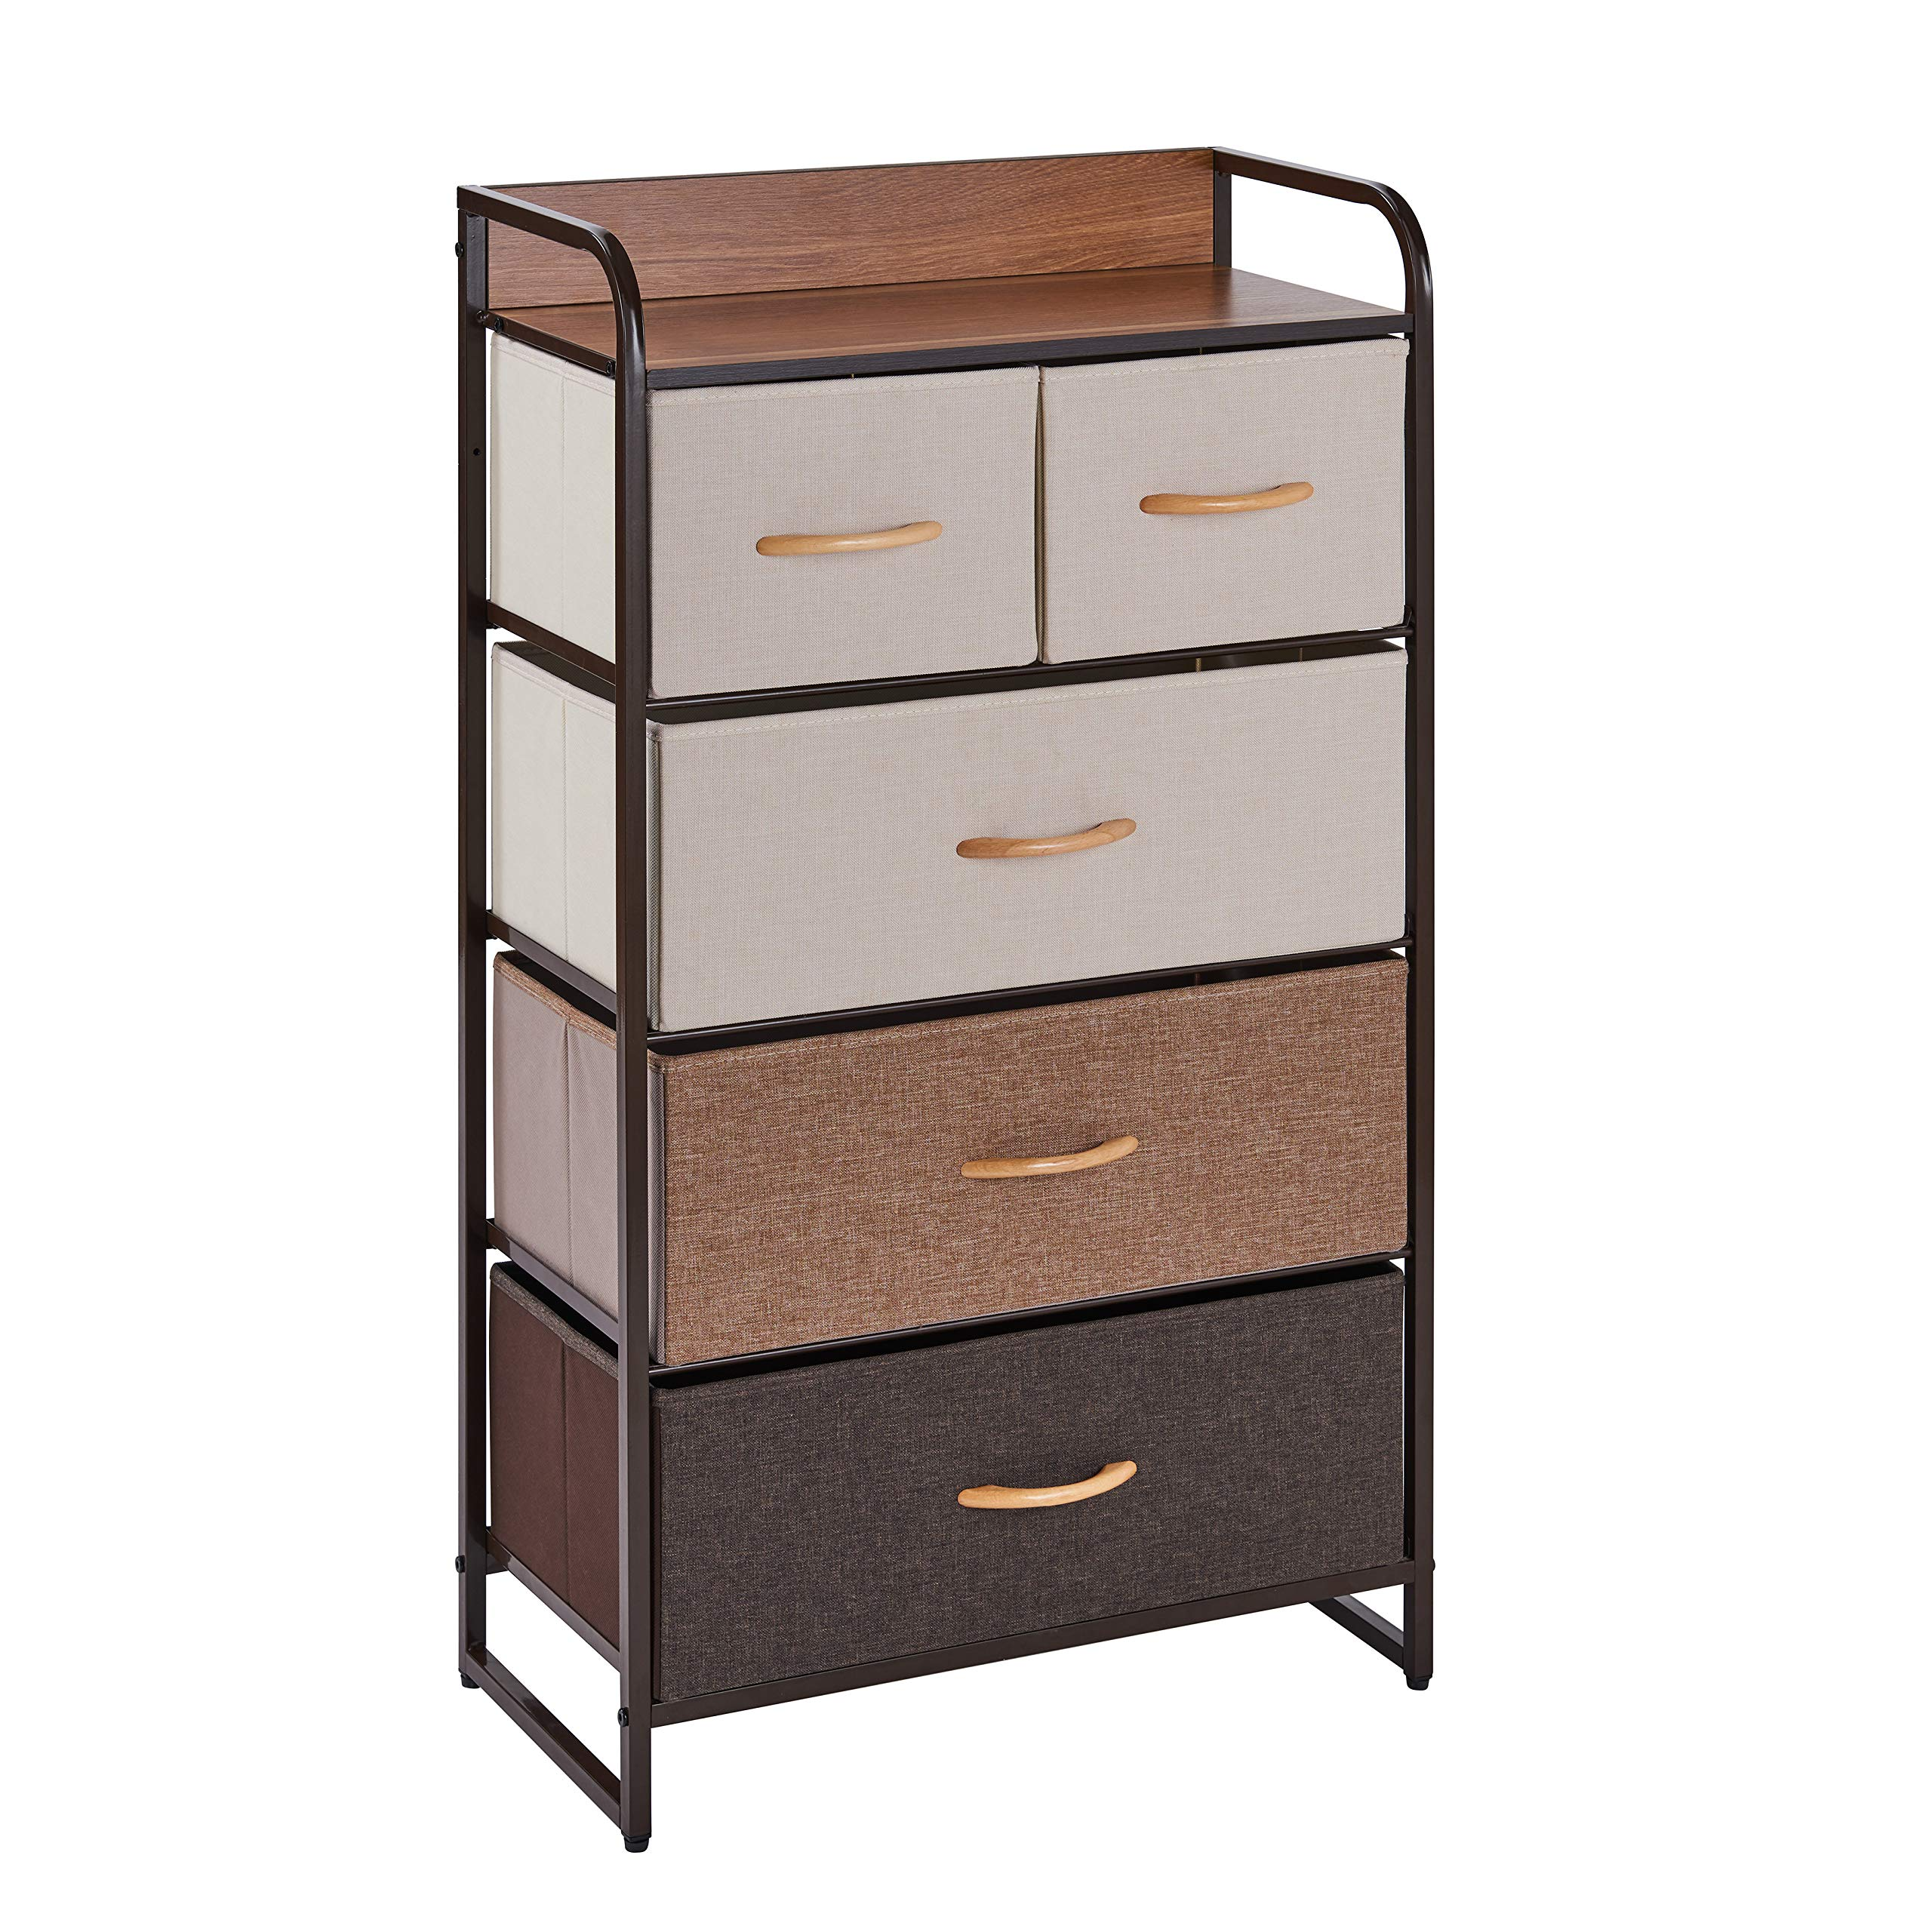 Danya B. SC5608 Decorative Storage for Small Spaces - Modern Chest Dresser with 5 Fabric Drawers by Danya B